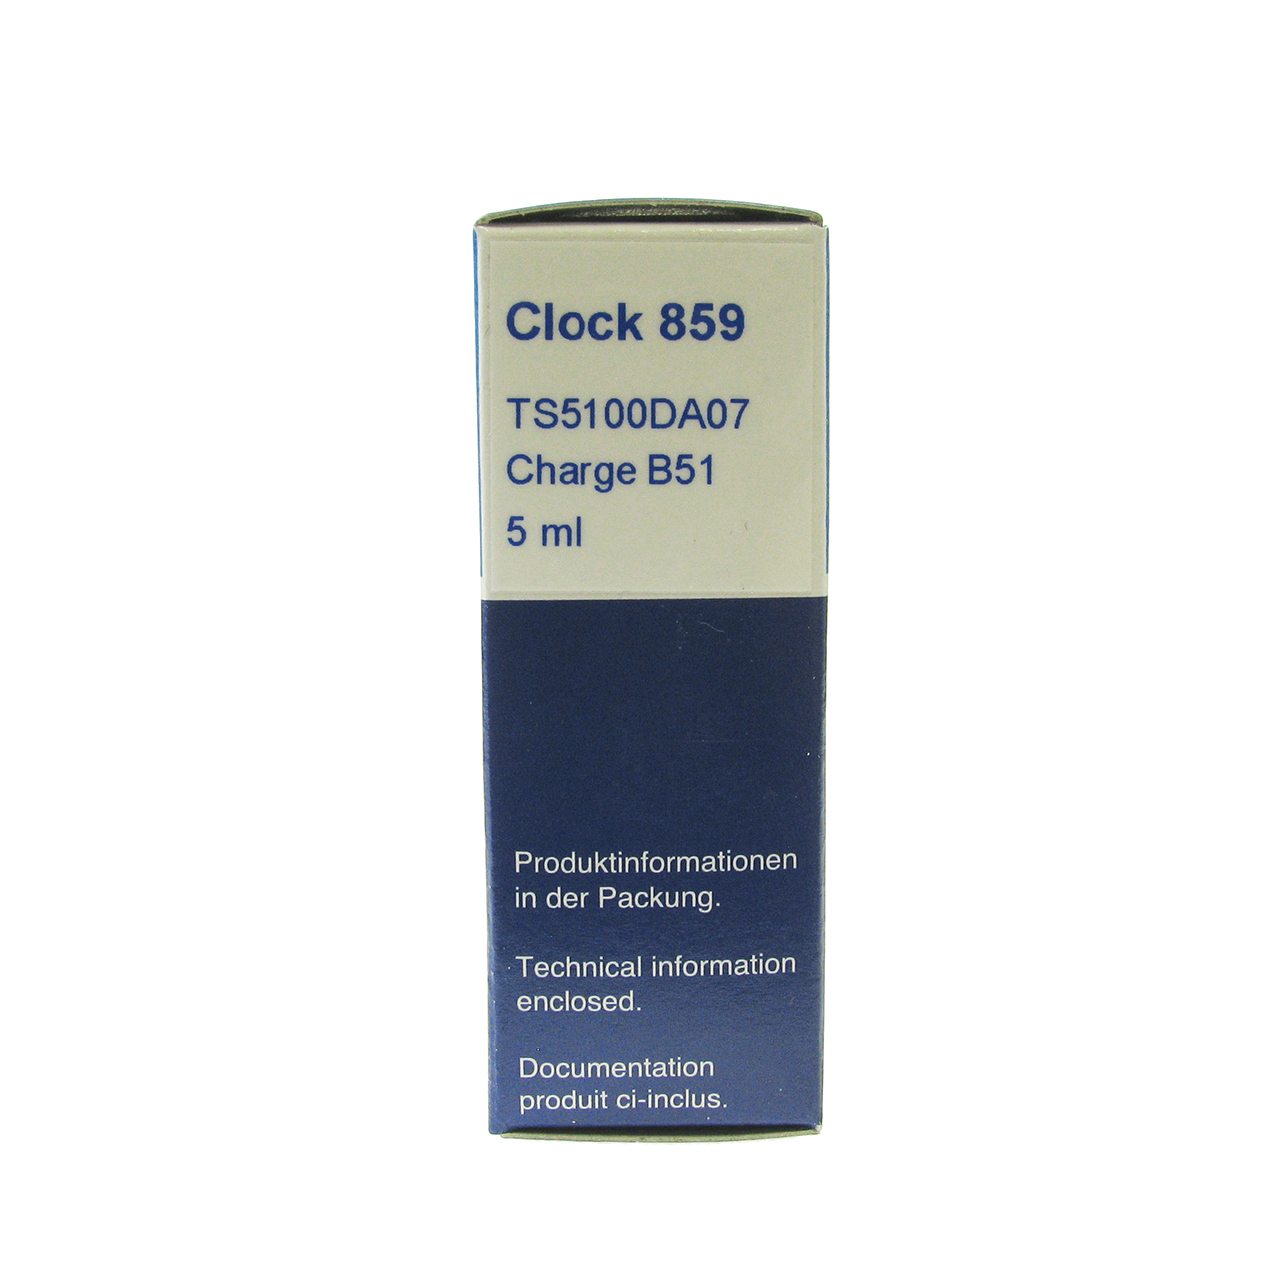 Synthetic Clock Oil 'Clock 859'